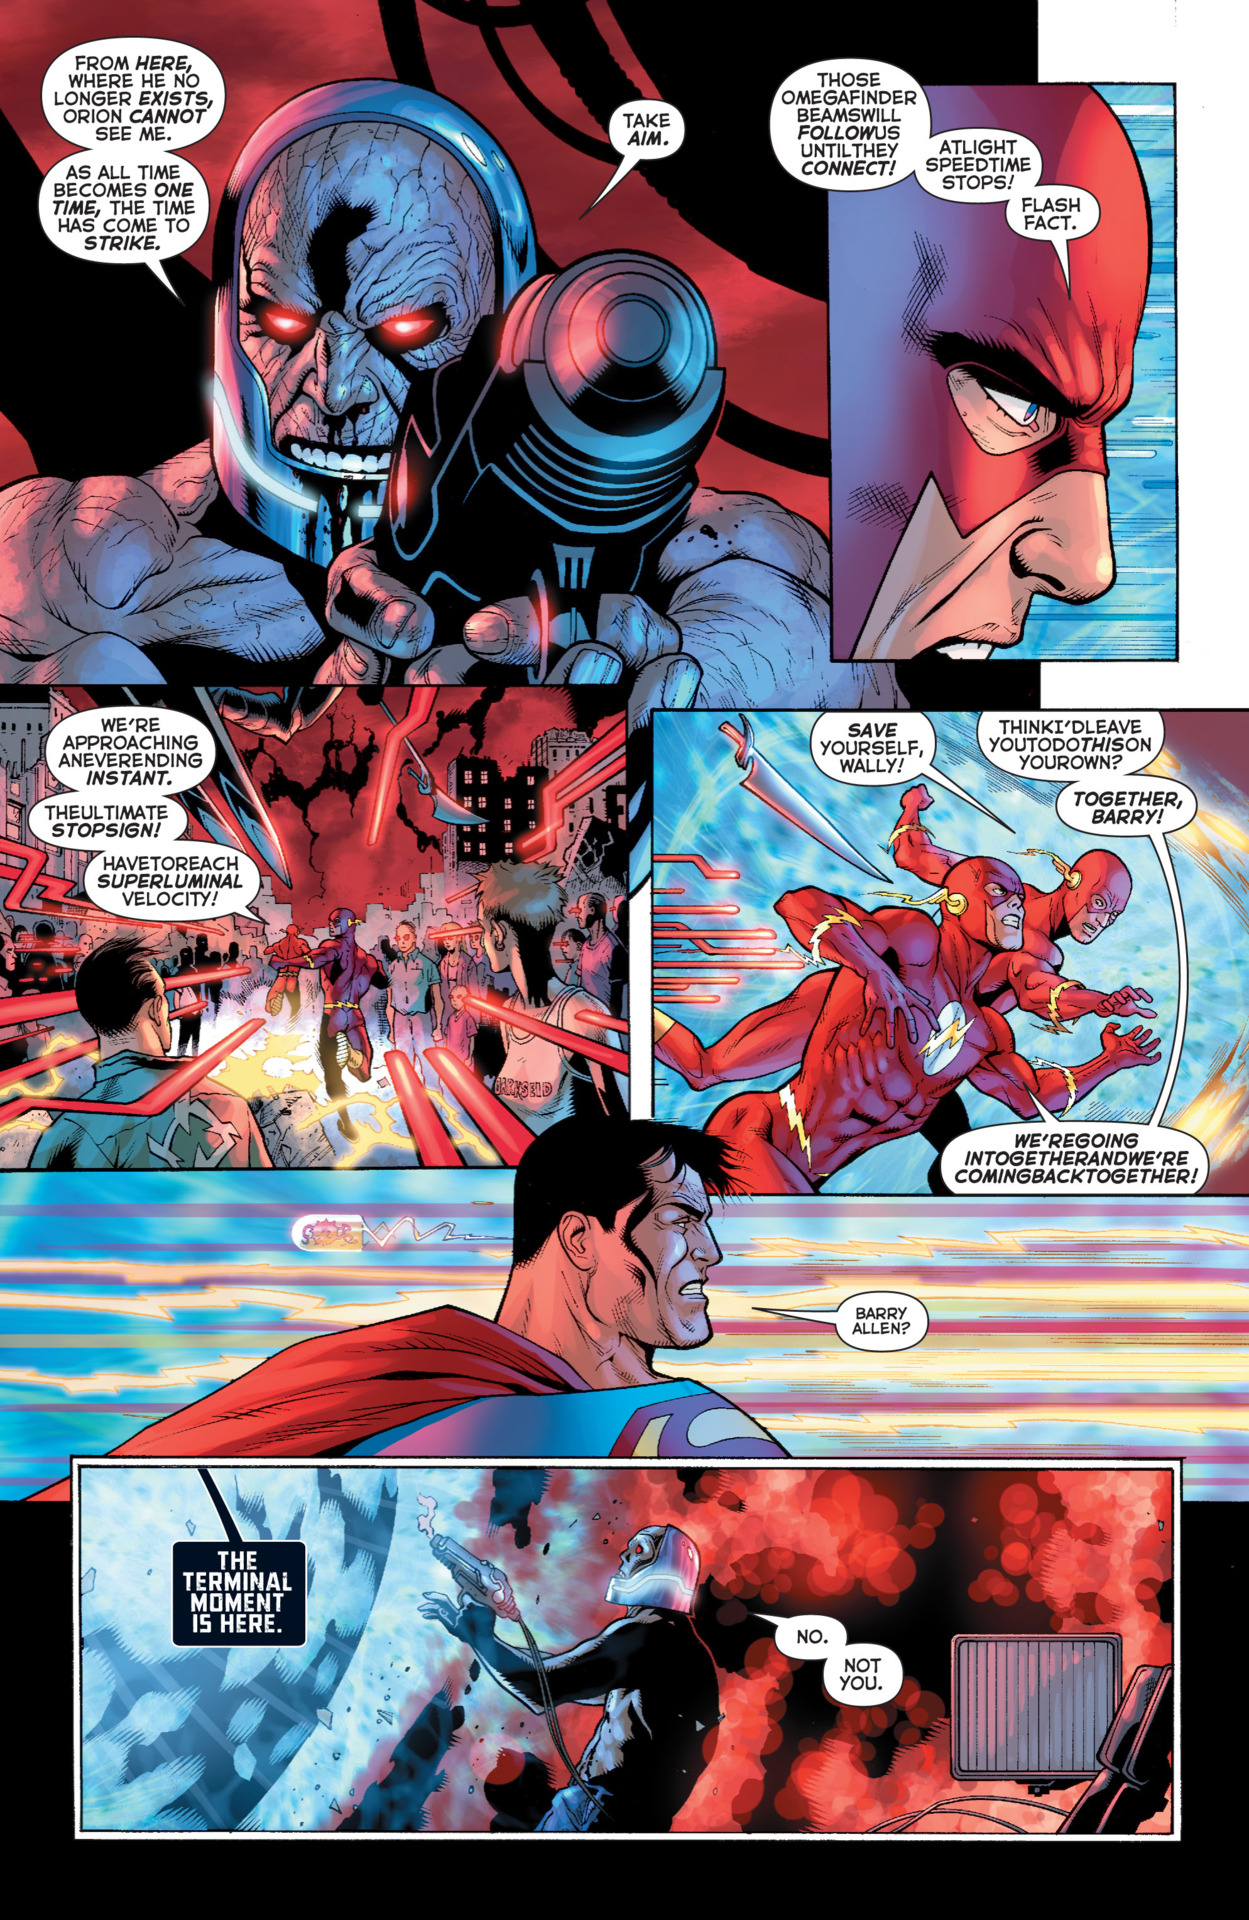 Superman could see Barry Allen running faster than light next to him to avoid the Omega beams and the Black Racer